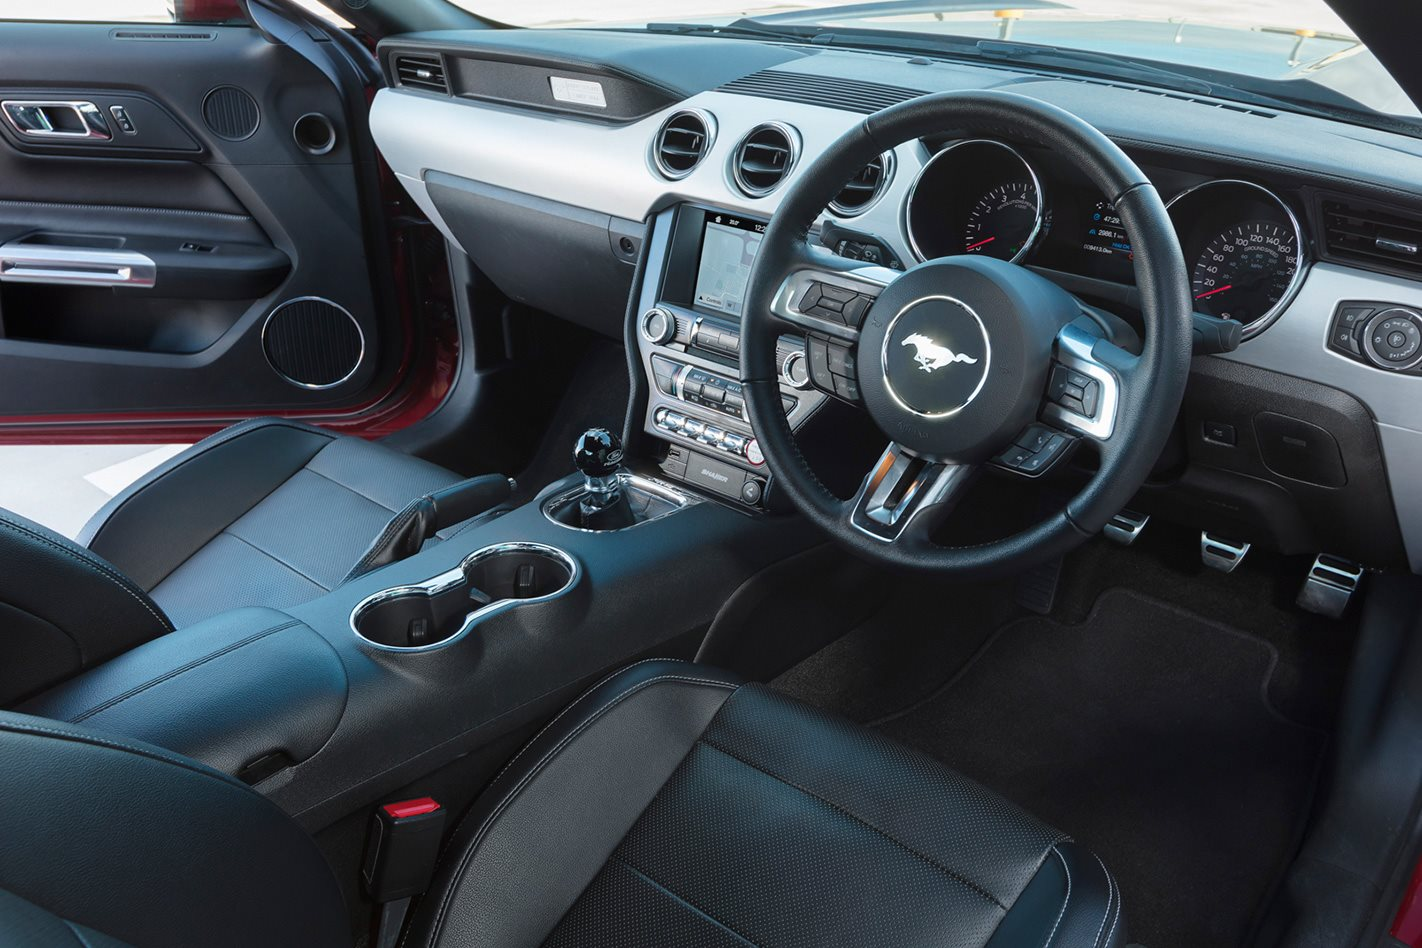 2017 Ford Mustang PP interior